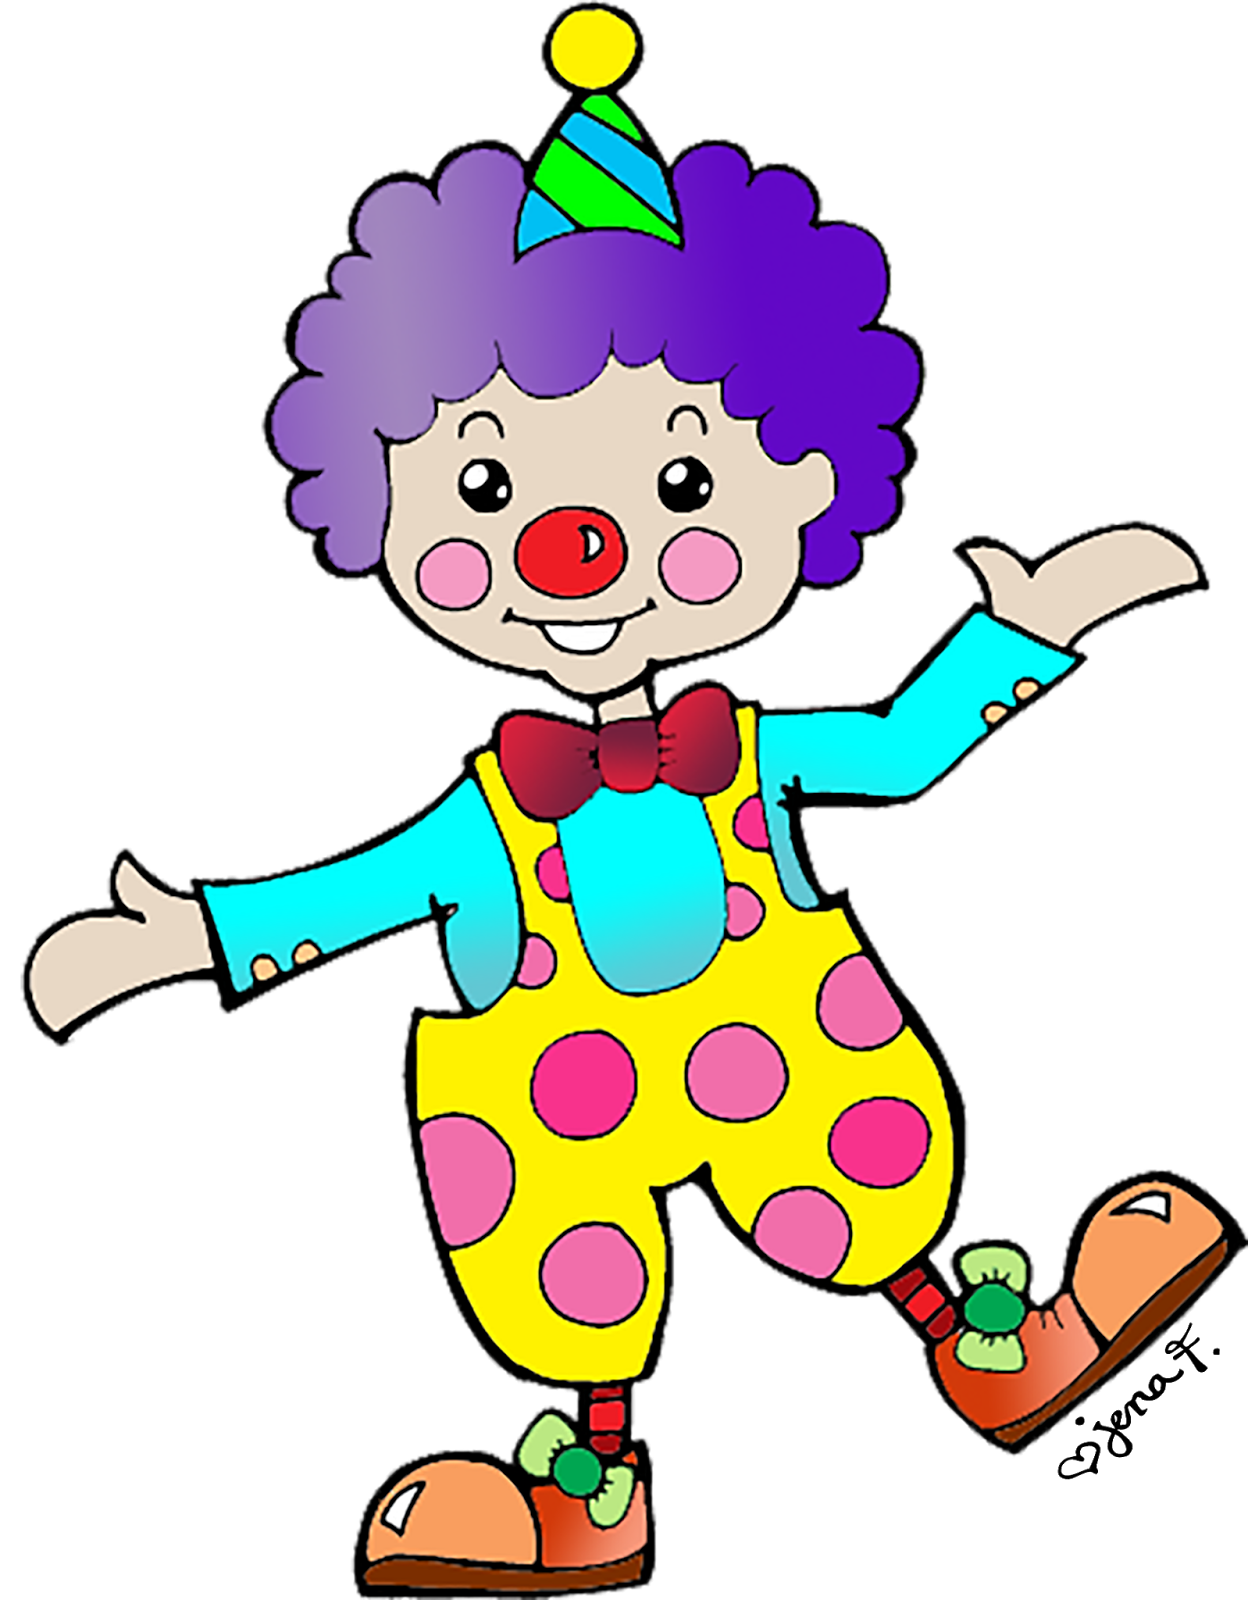 Circus joker clipart clip black and white download Circus free clown clipart the cliparts - Clipartix clip black and white download